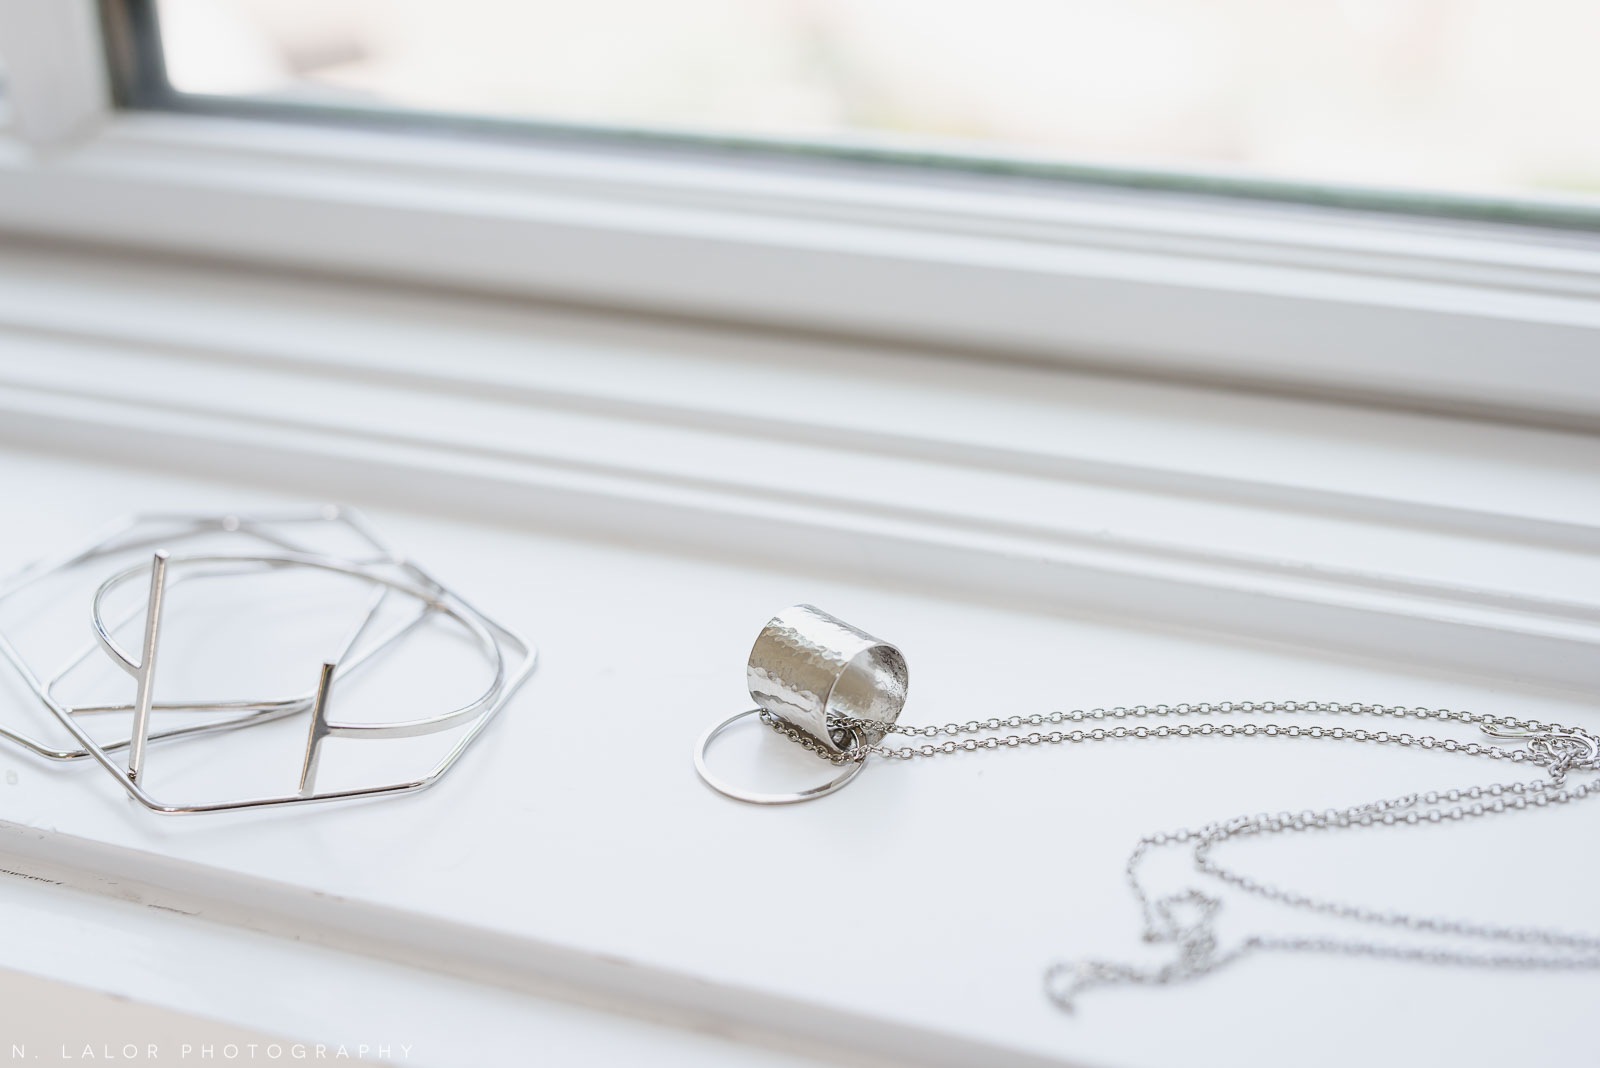 Silver jewelry, sustainably sourced from around the world. Local Small Business photoshoot for METTA10 by N. Lalor Photography. Westport, Connecticut.